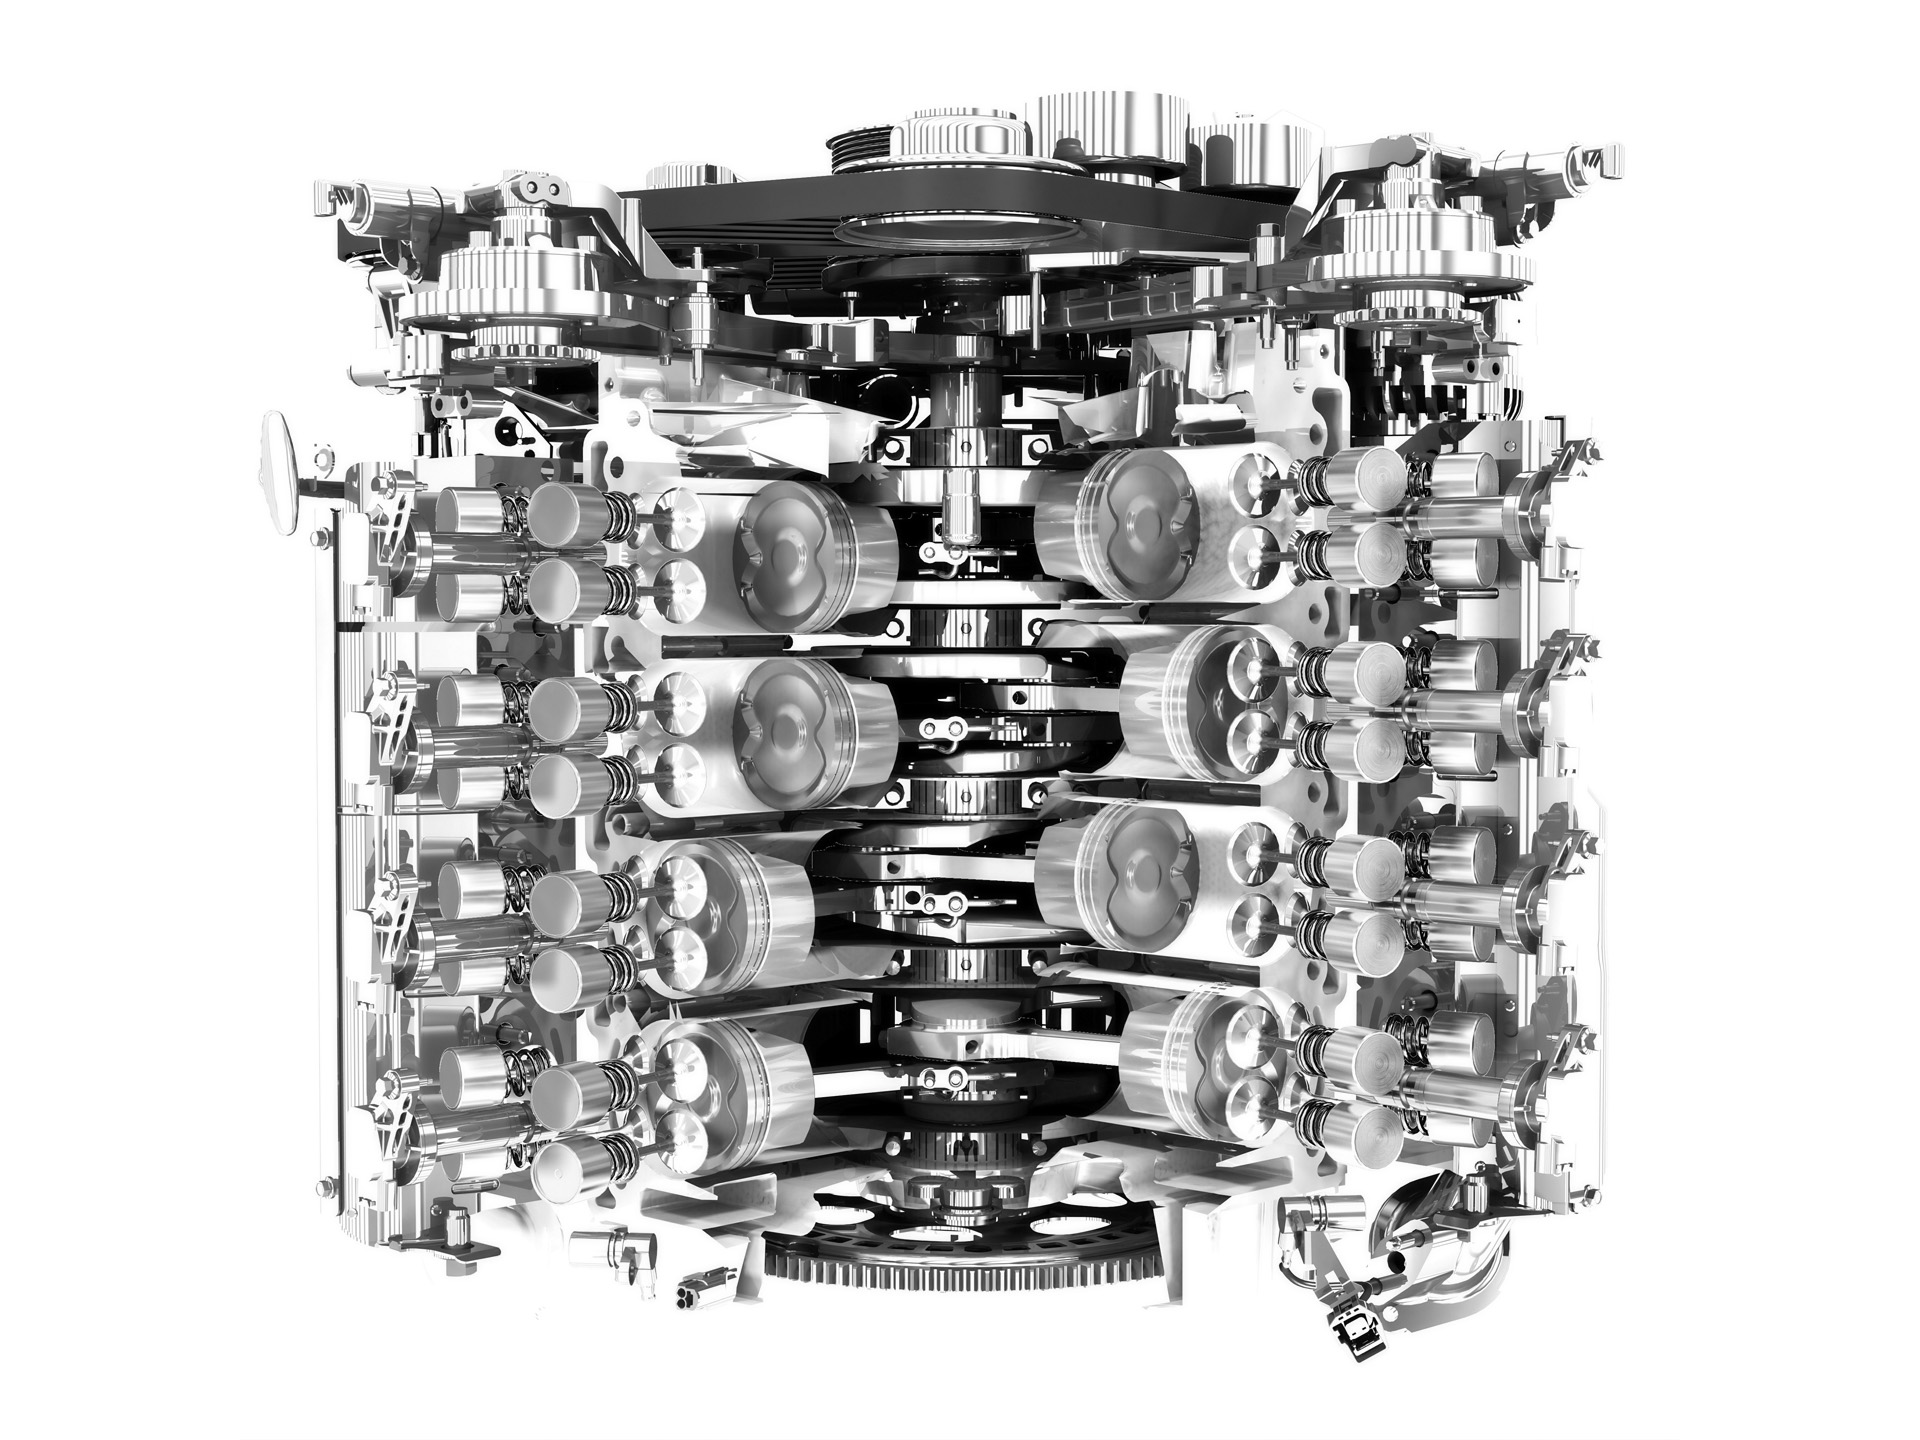 Sample U1430 Engine